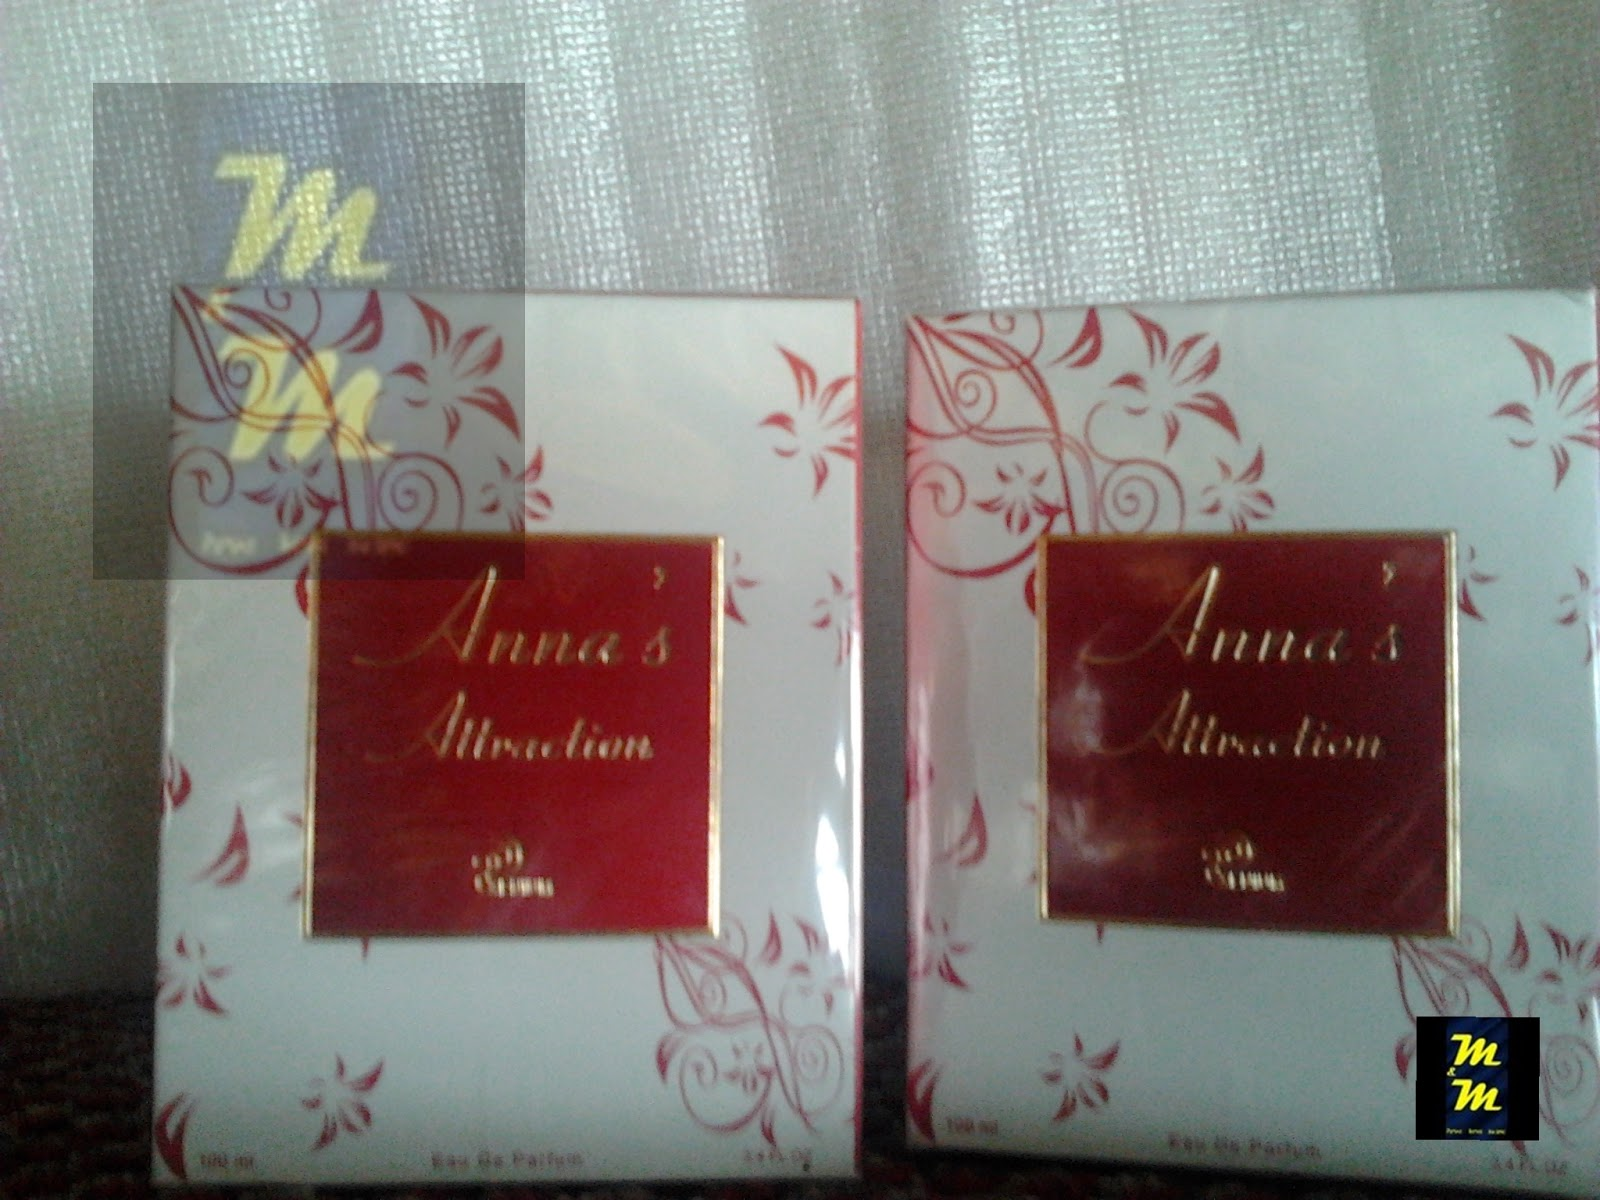 anna's attraction perfume